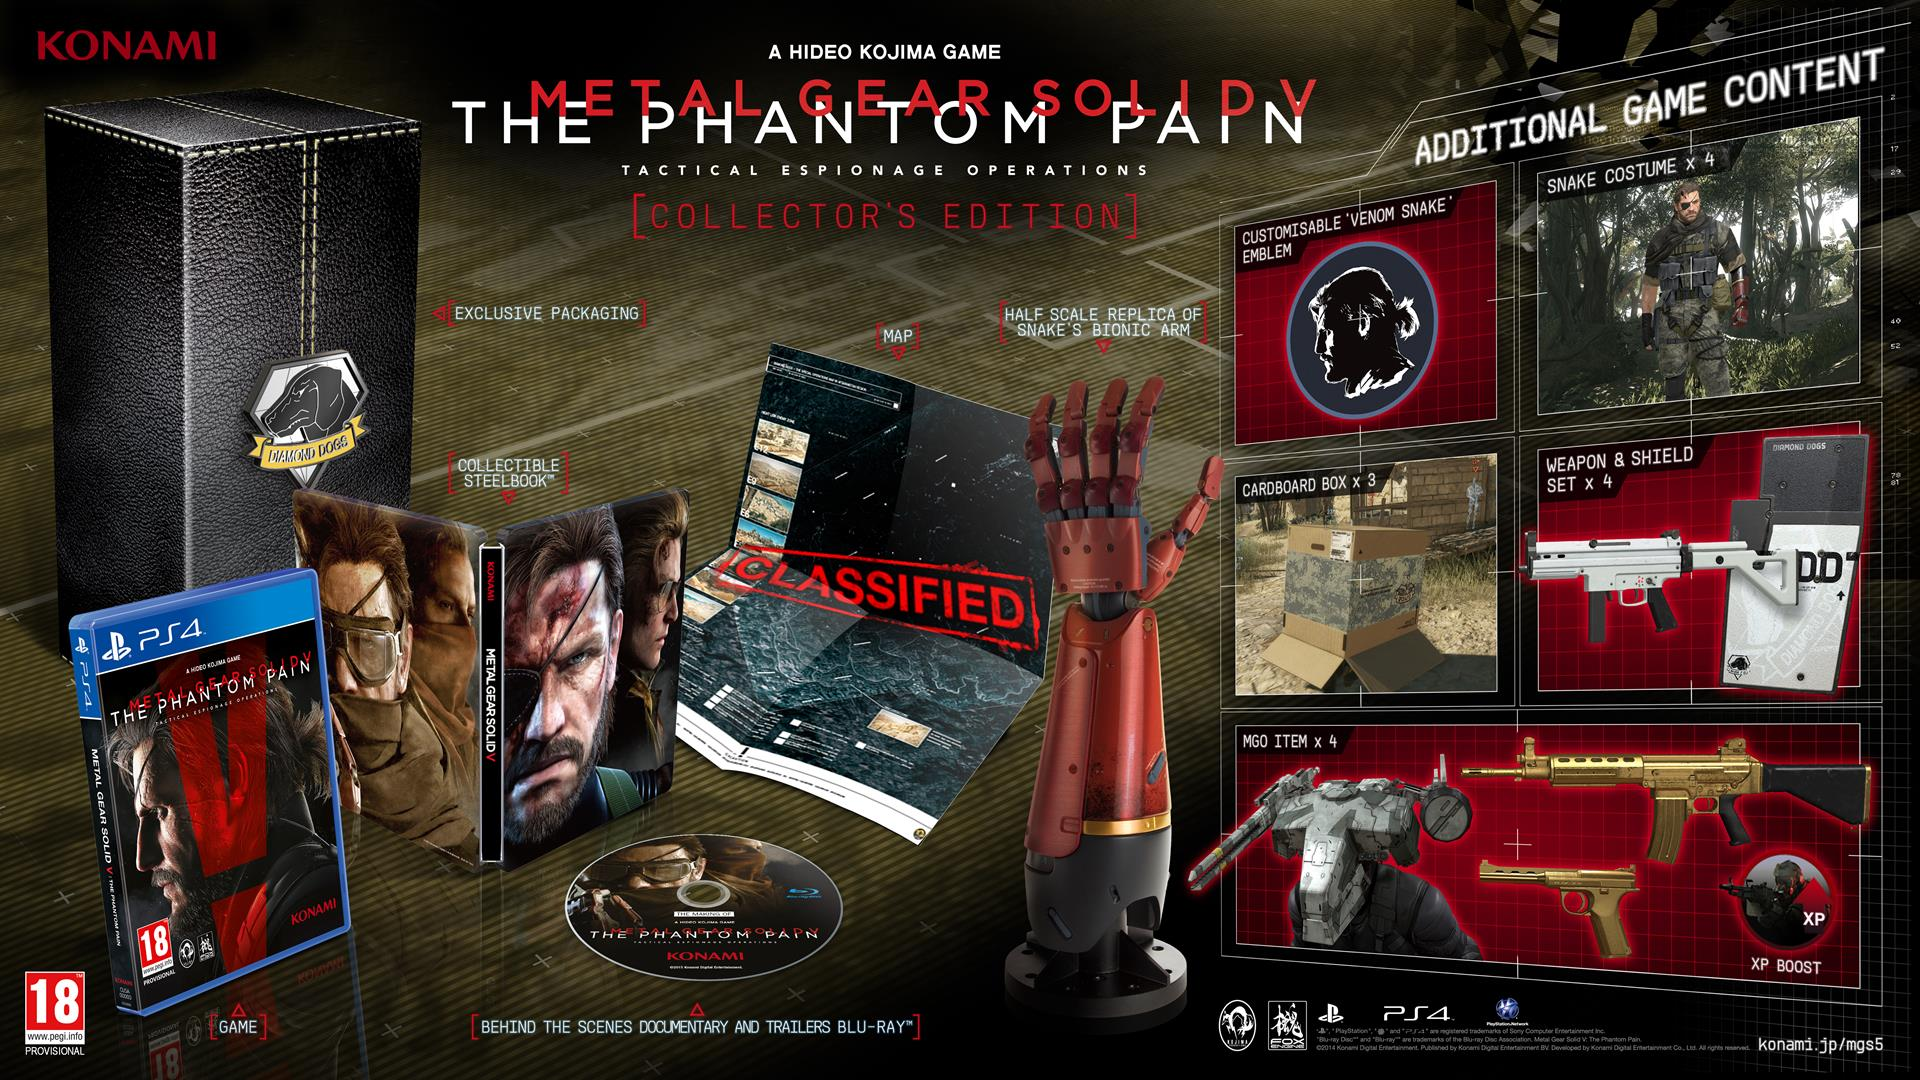 These close-up photos of mgs v: the phantom pain limited edition.